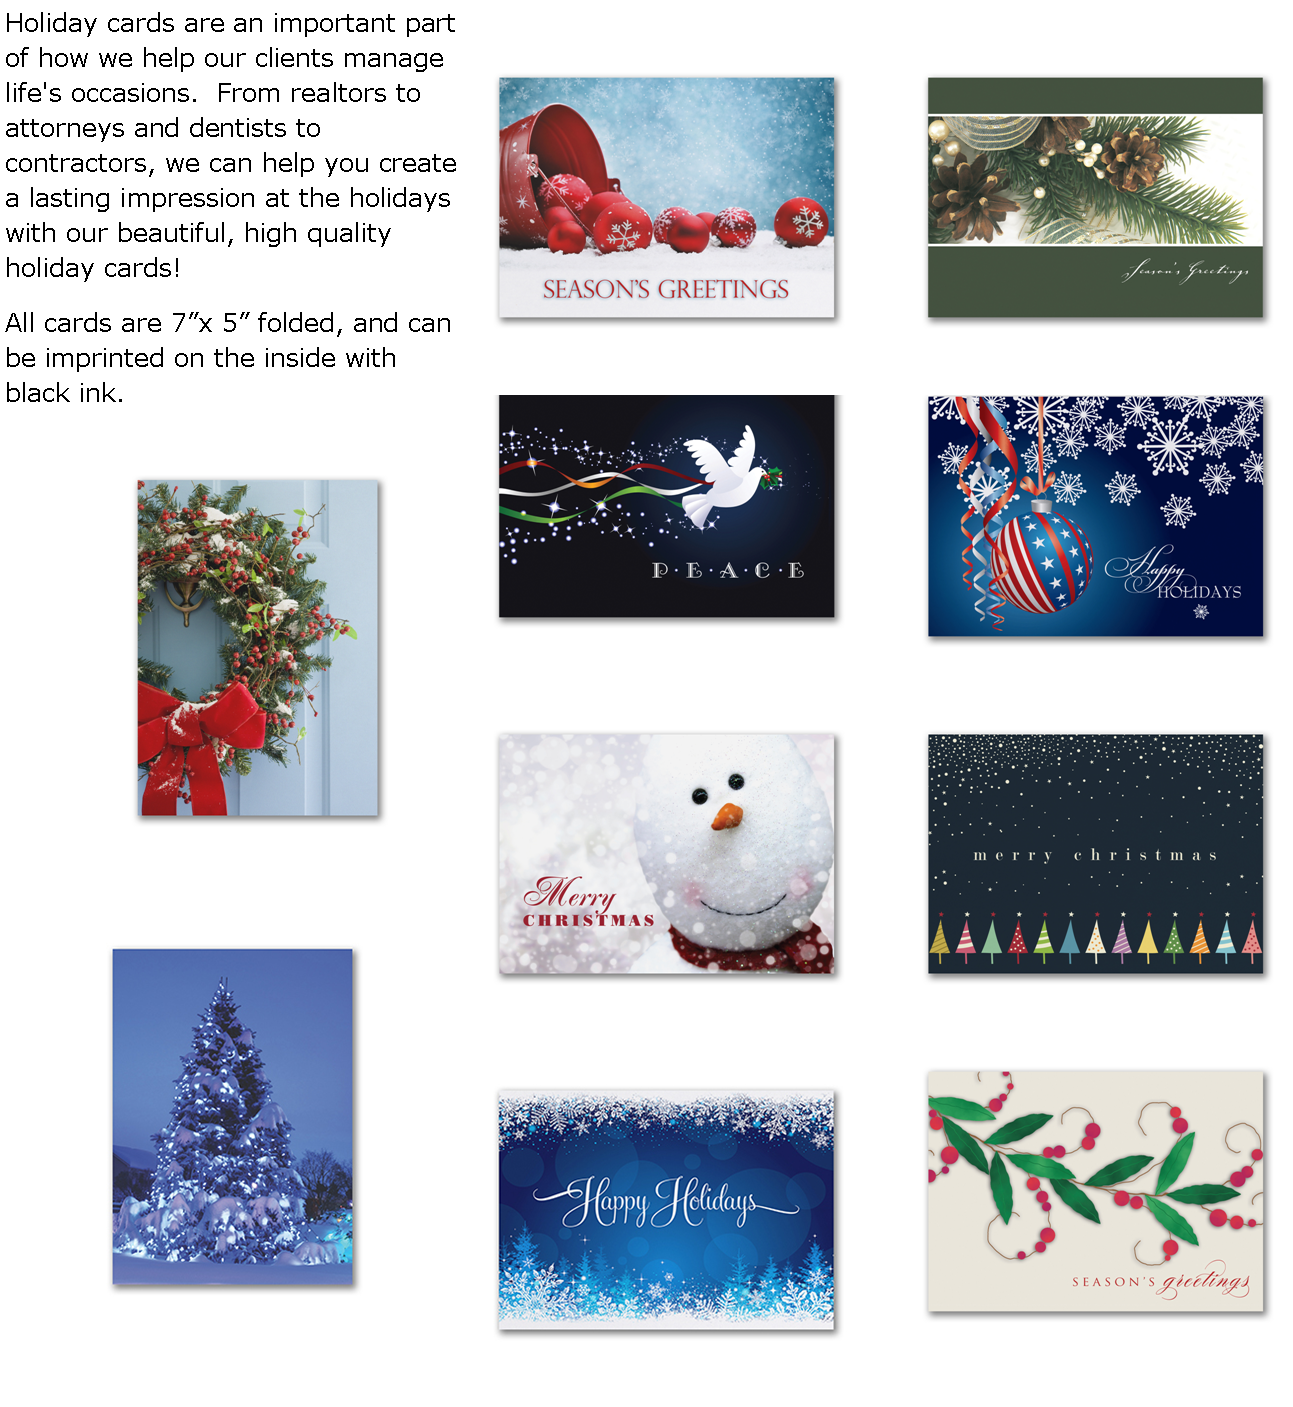 holiday cards with textpng - Holiday Cards 2017